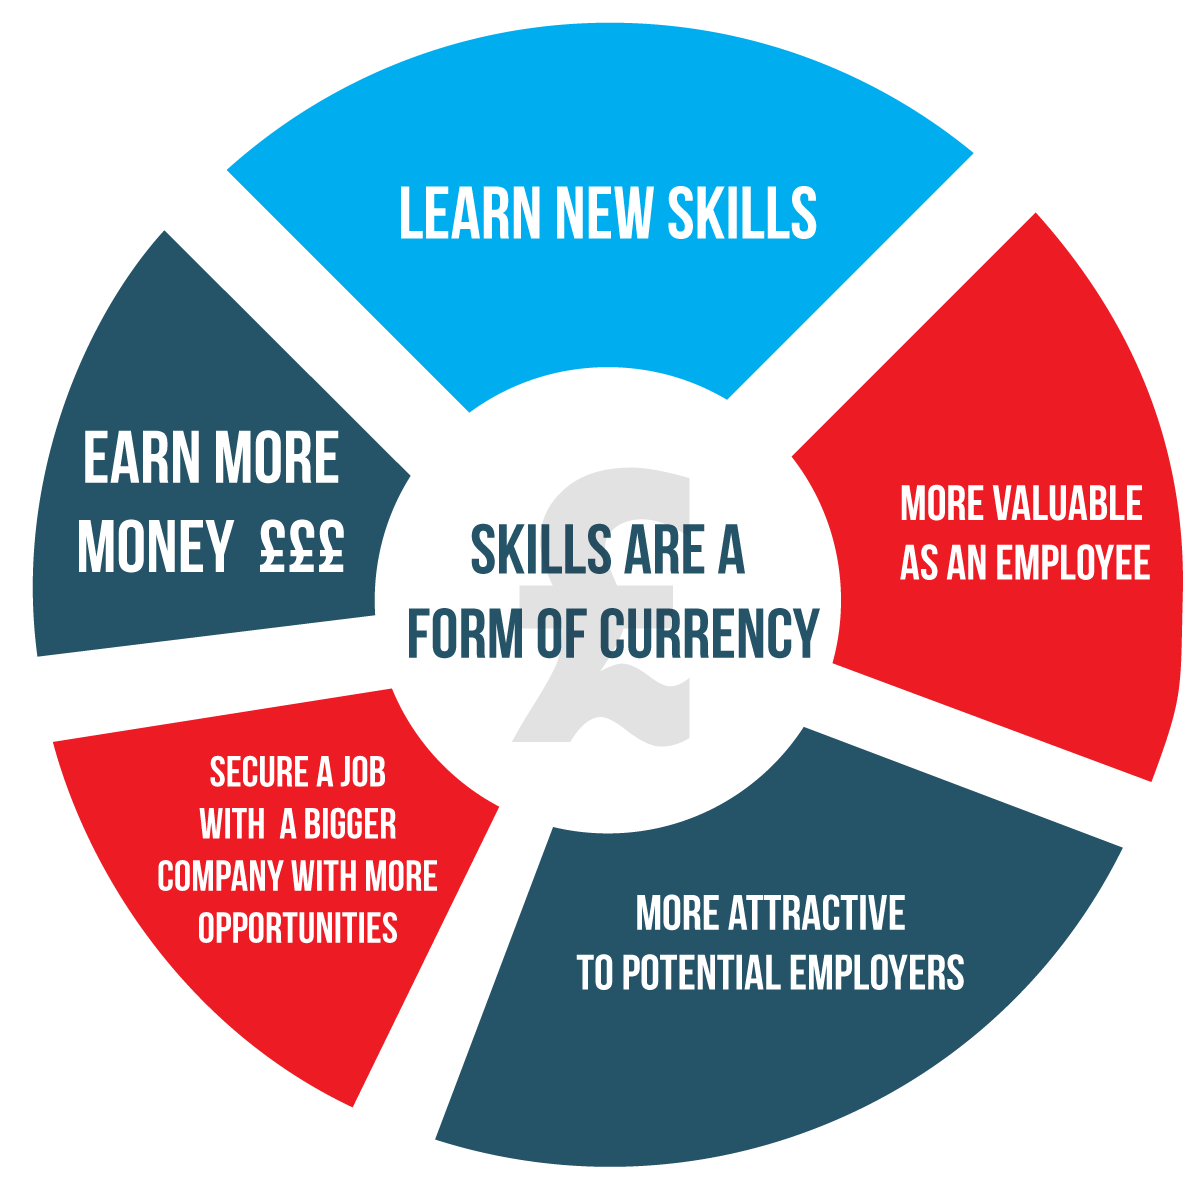 18 skills to help you earn more money in your job